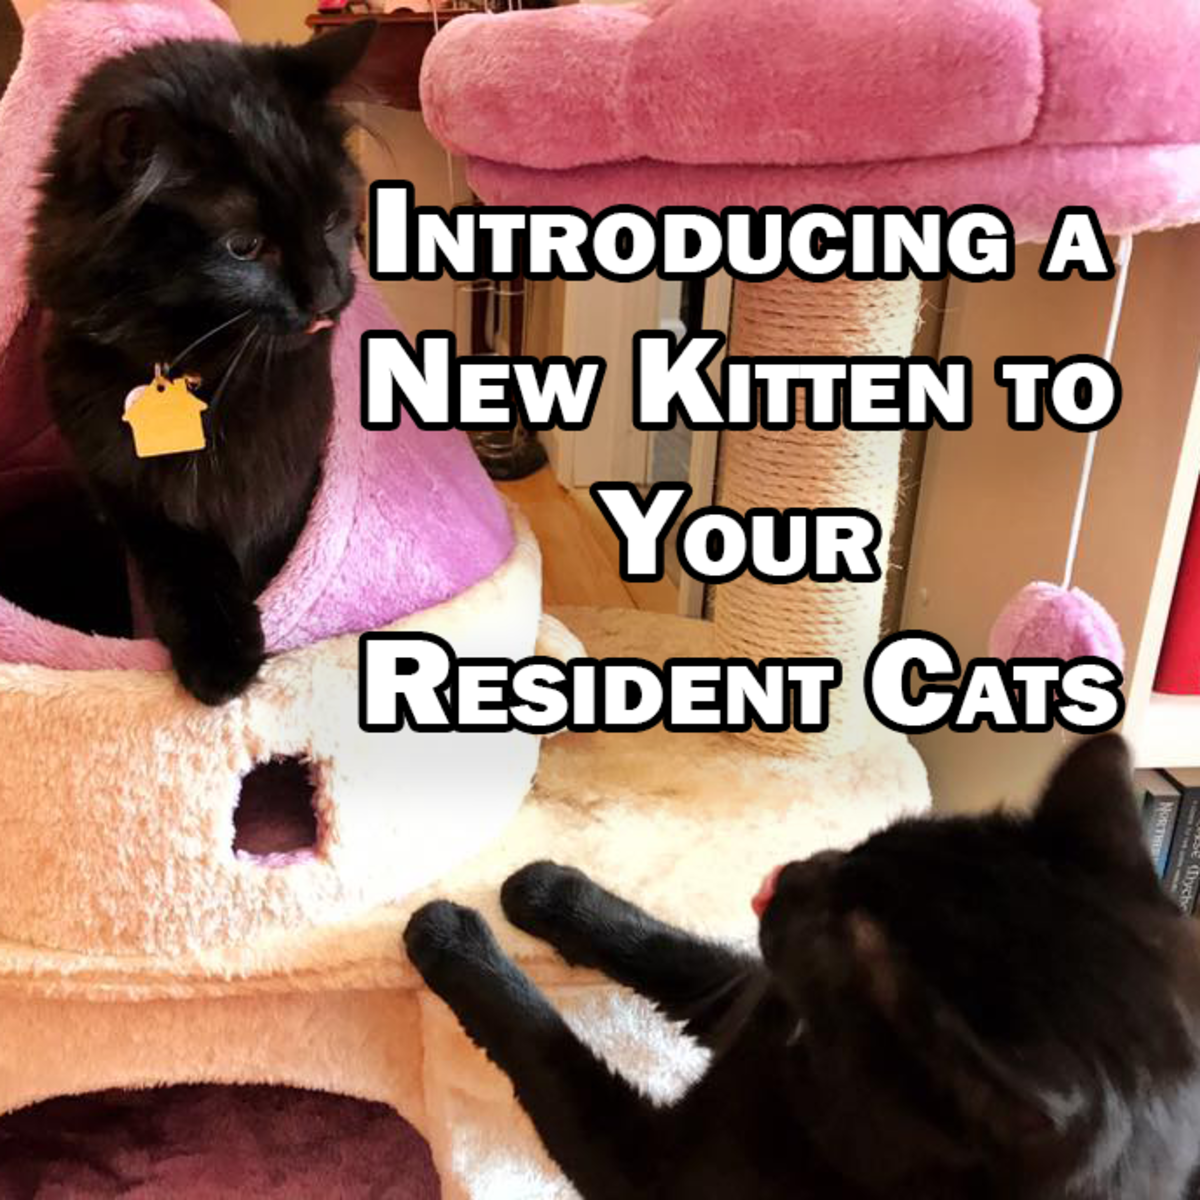 How to Introduce a New Kitten to Your Resident Cats - The Right Way!